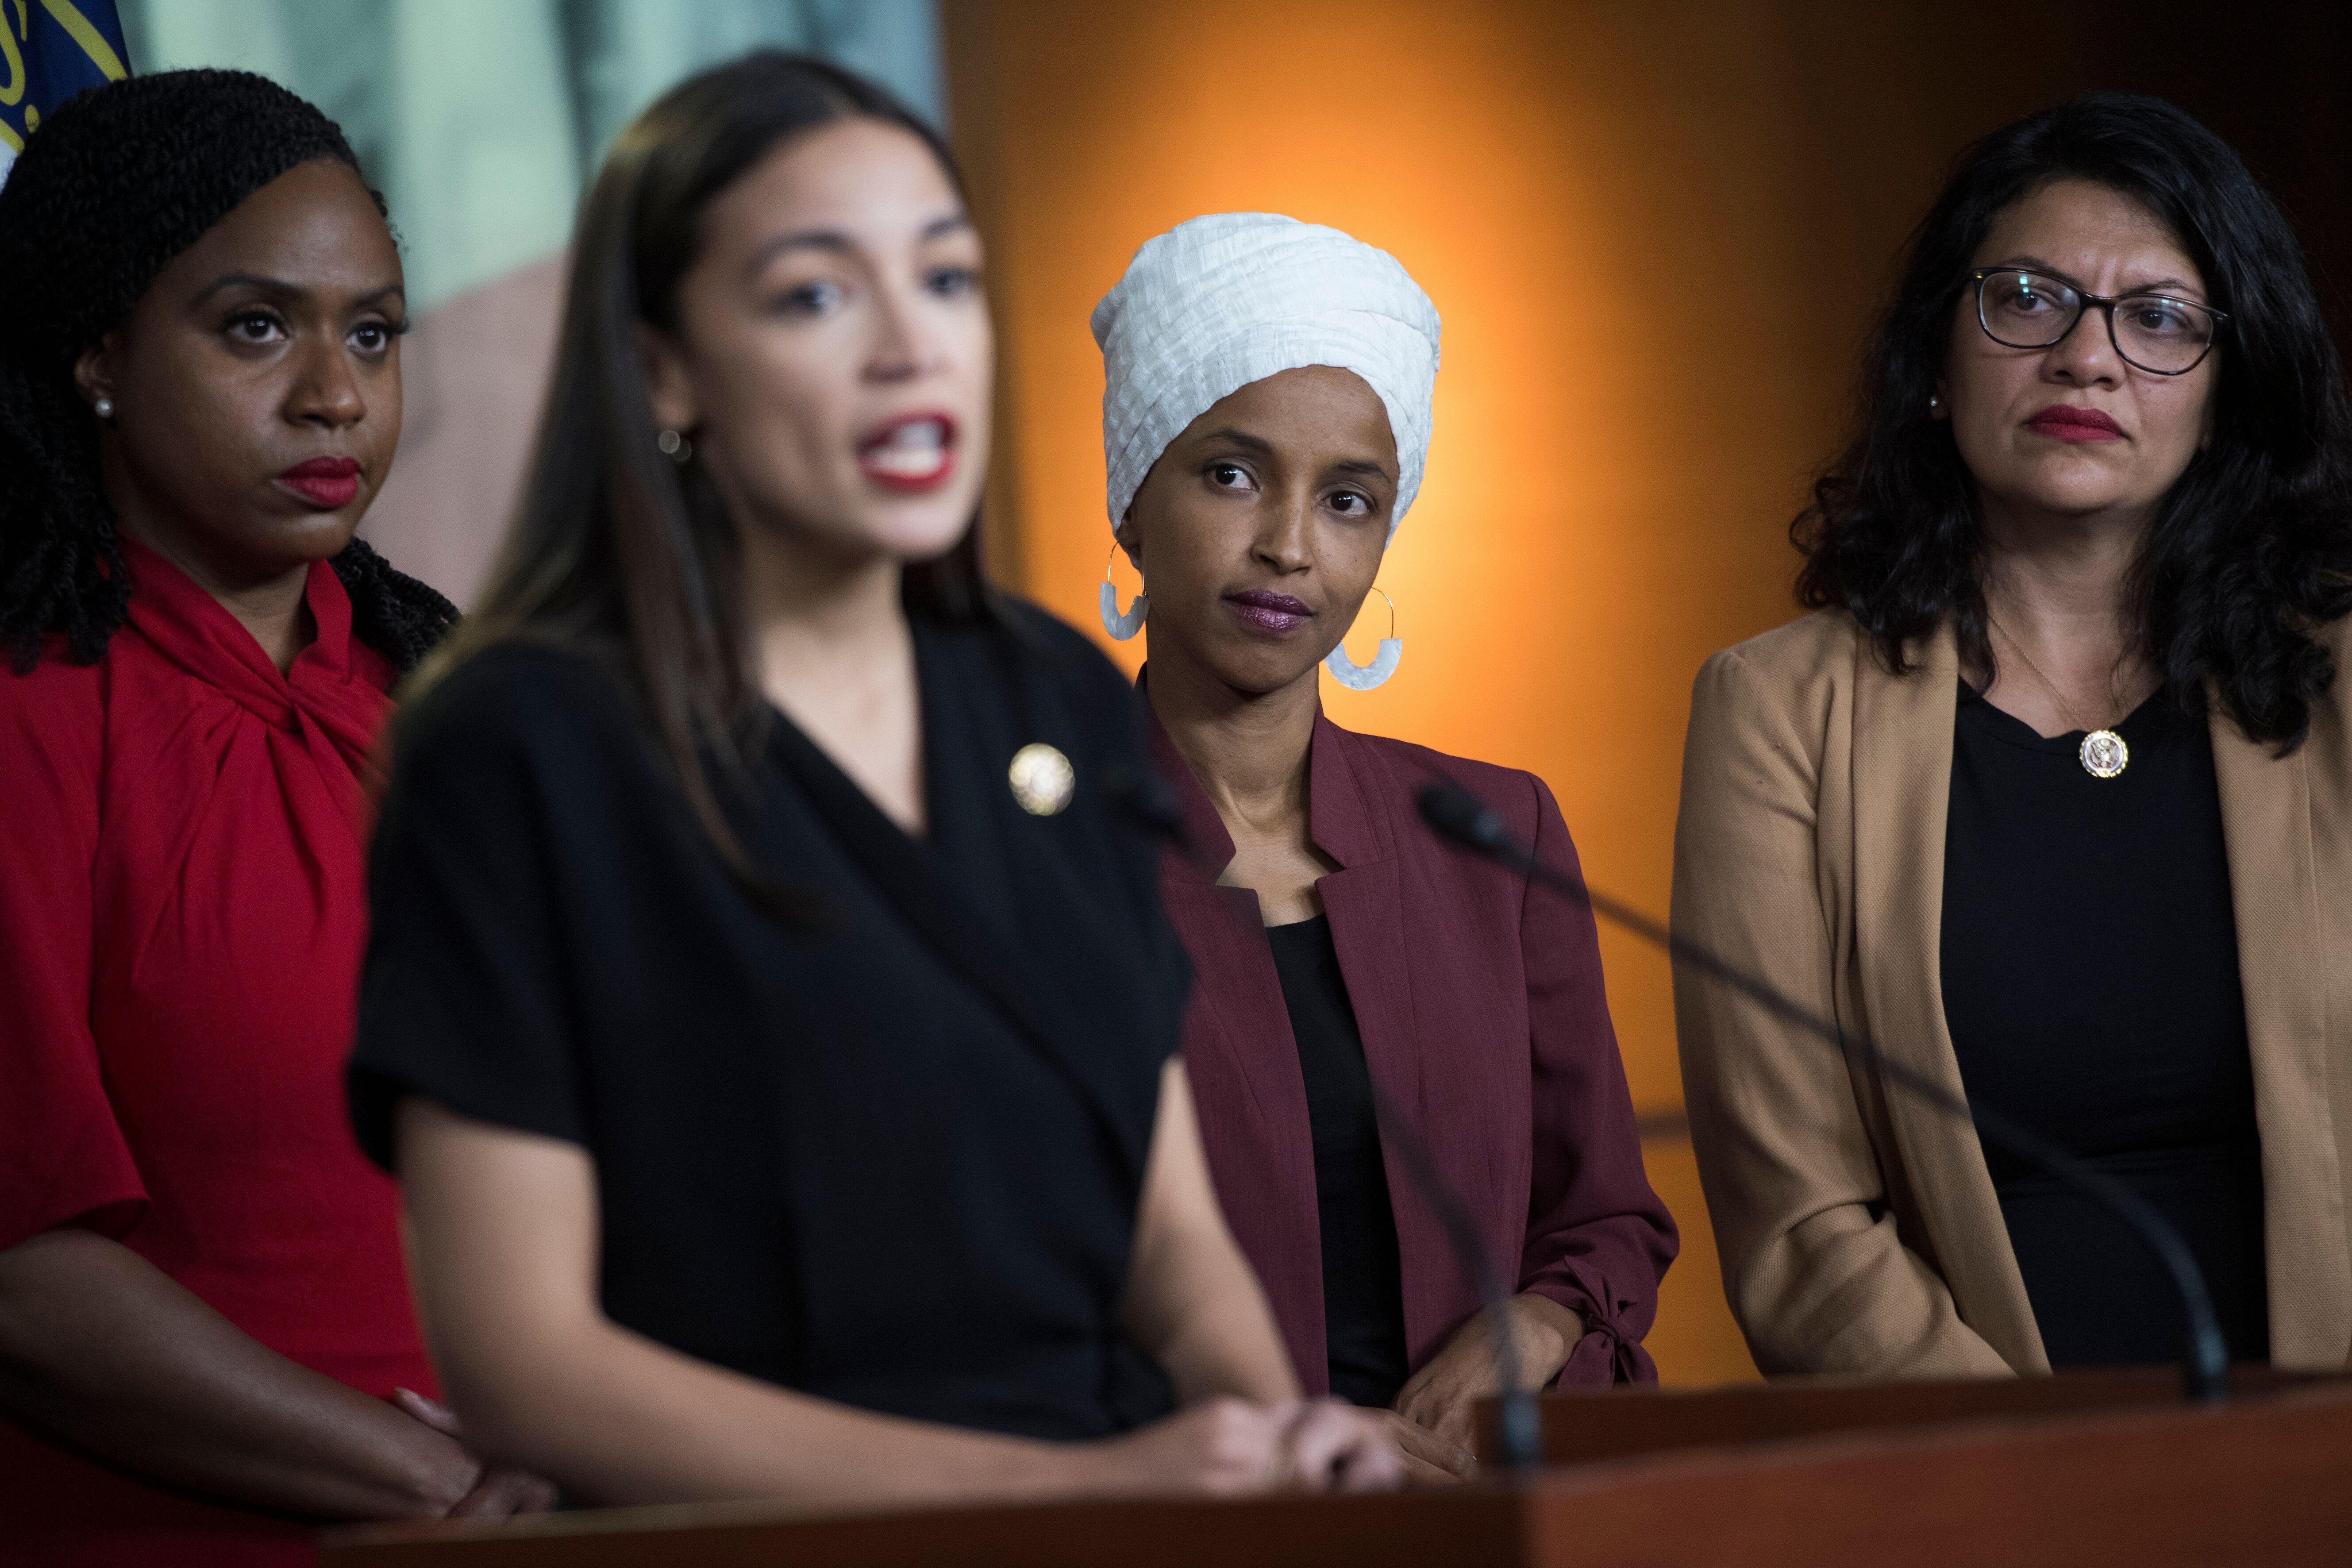 The Squad, from left: Reps. Ayanna Pressley (D-Mass.), Alexandria Ocasio-Cortez (D-N.Y.), Ilhan Omar (D-Minn.) and Tlaib, res